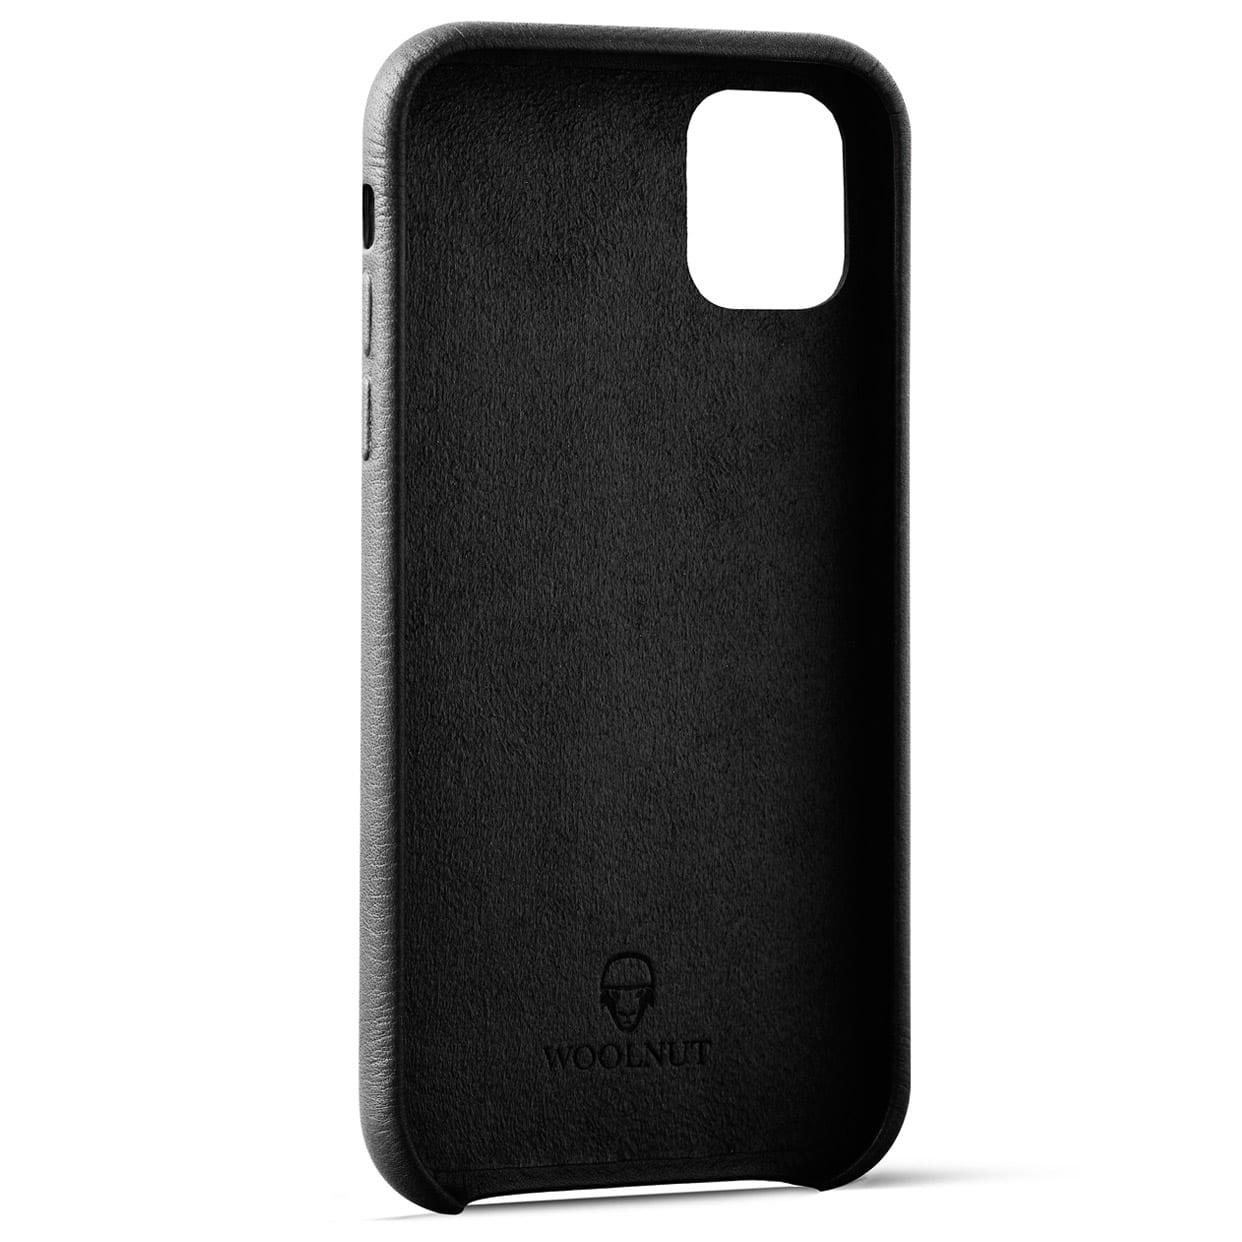 Woolnut iPhone 11 Case - Black - Netnaturshop